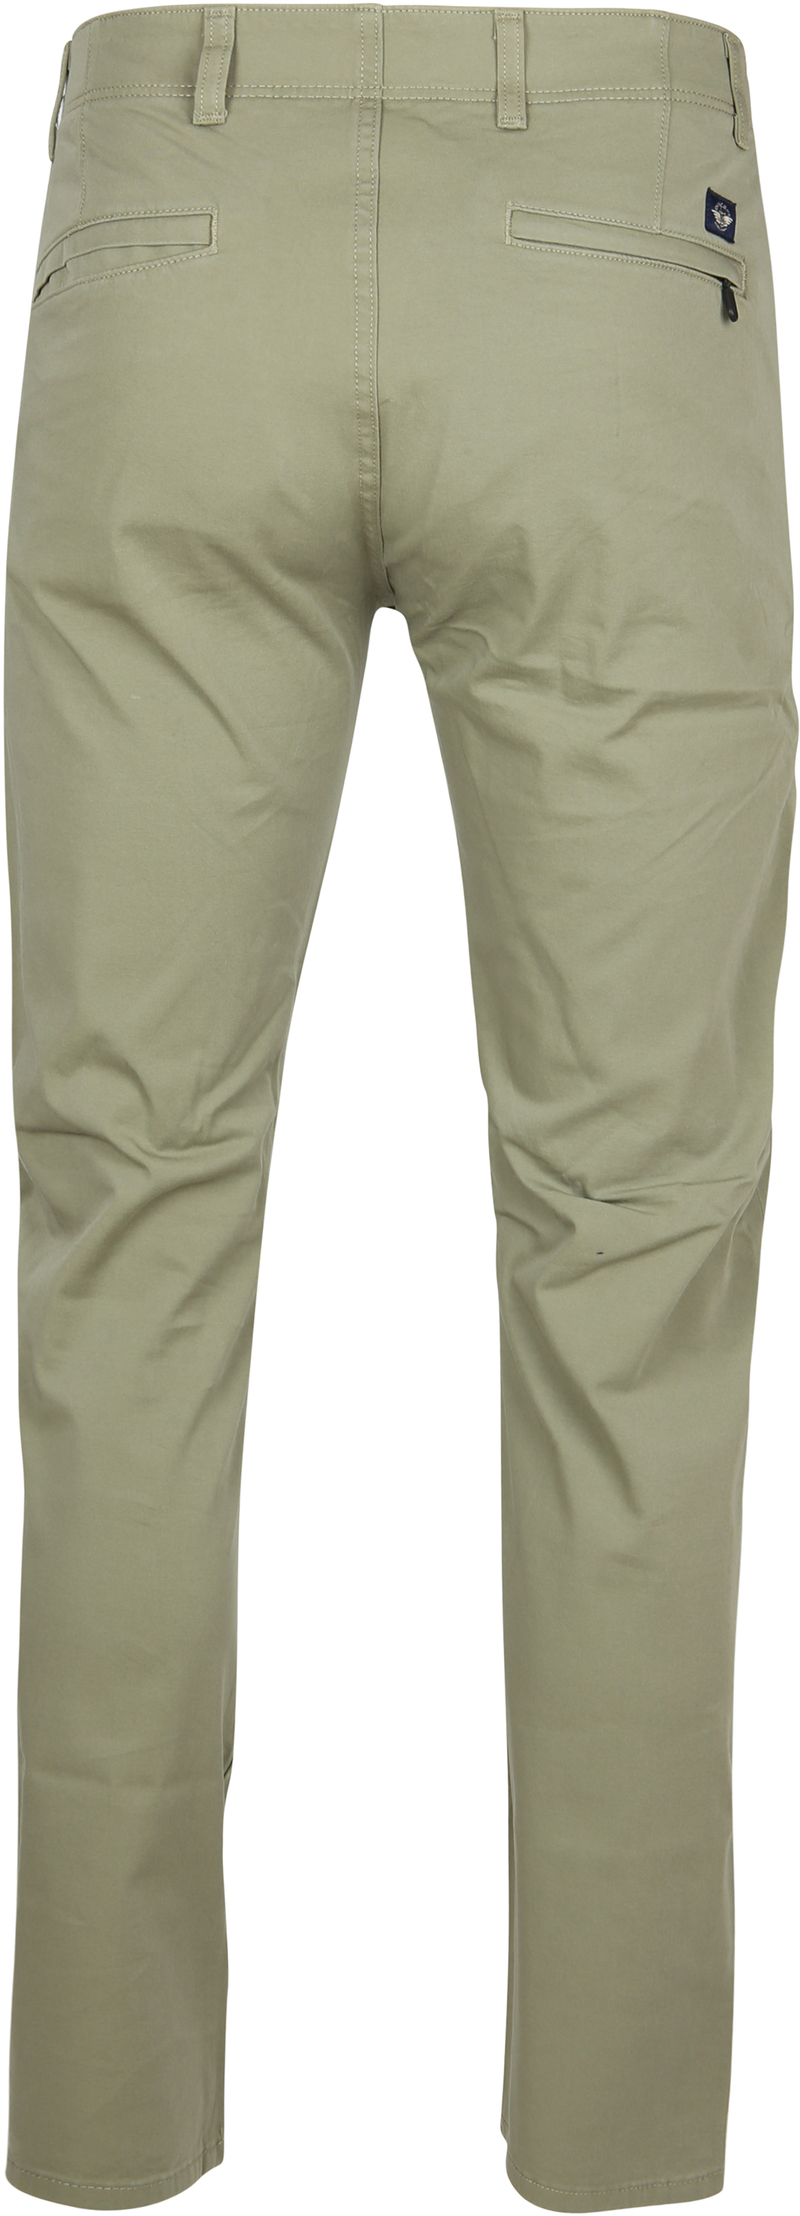 Dockers Alpha Tapered Chino 360 Flex Groen foto 4